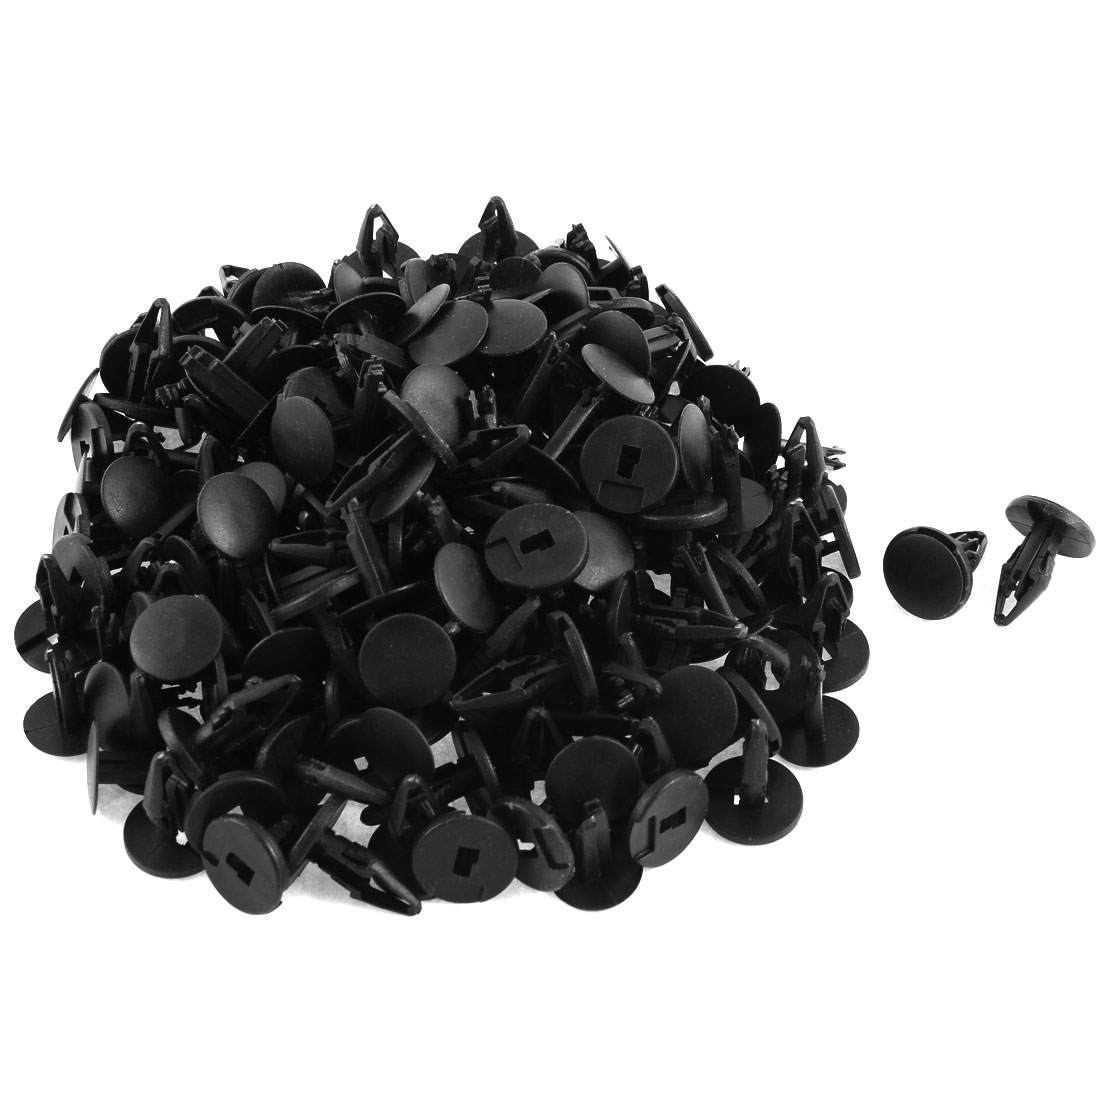 100 Pcs Black Plastic Rivet Trim Fastener Moulding Clips 9mm x 17mm x 20mm